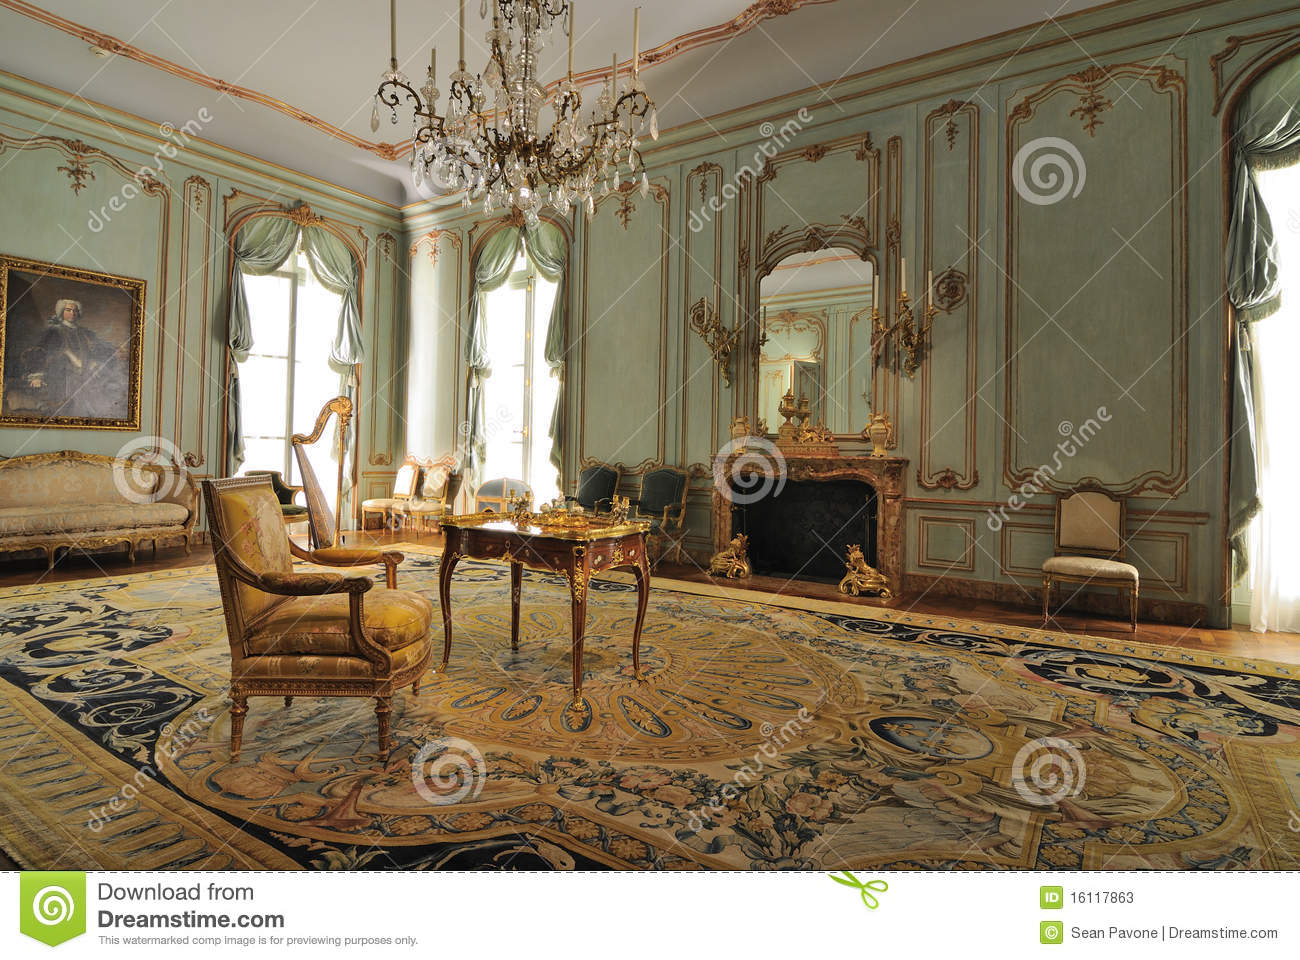 French Furniture Stock Photos - Image: 16117863